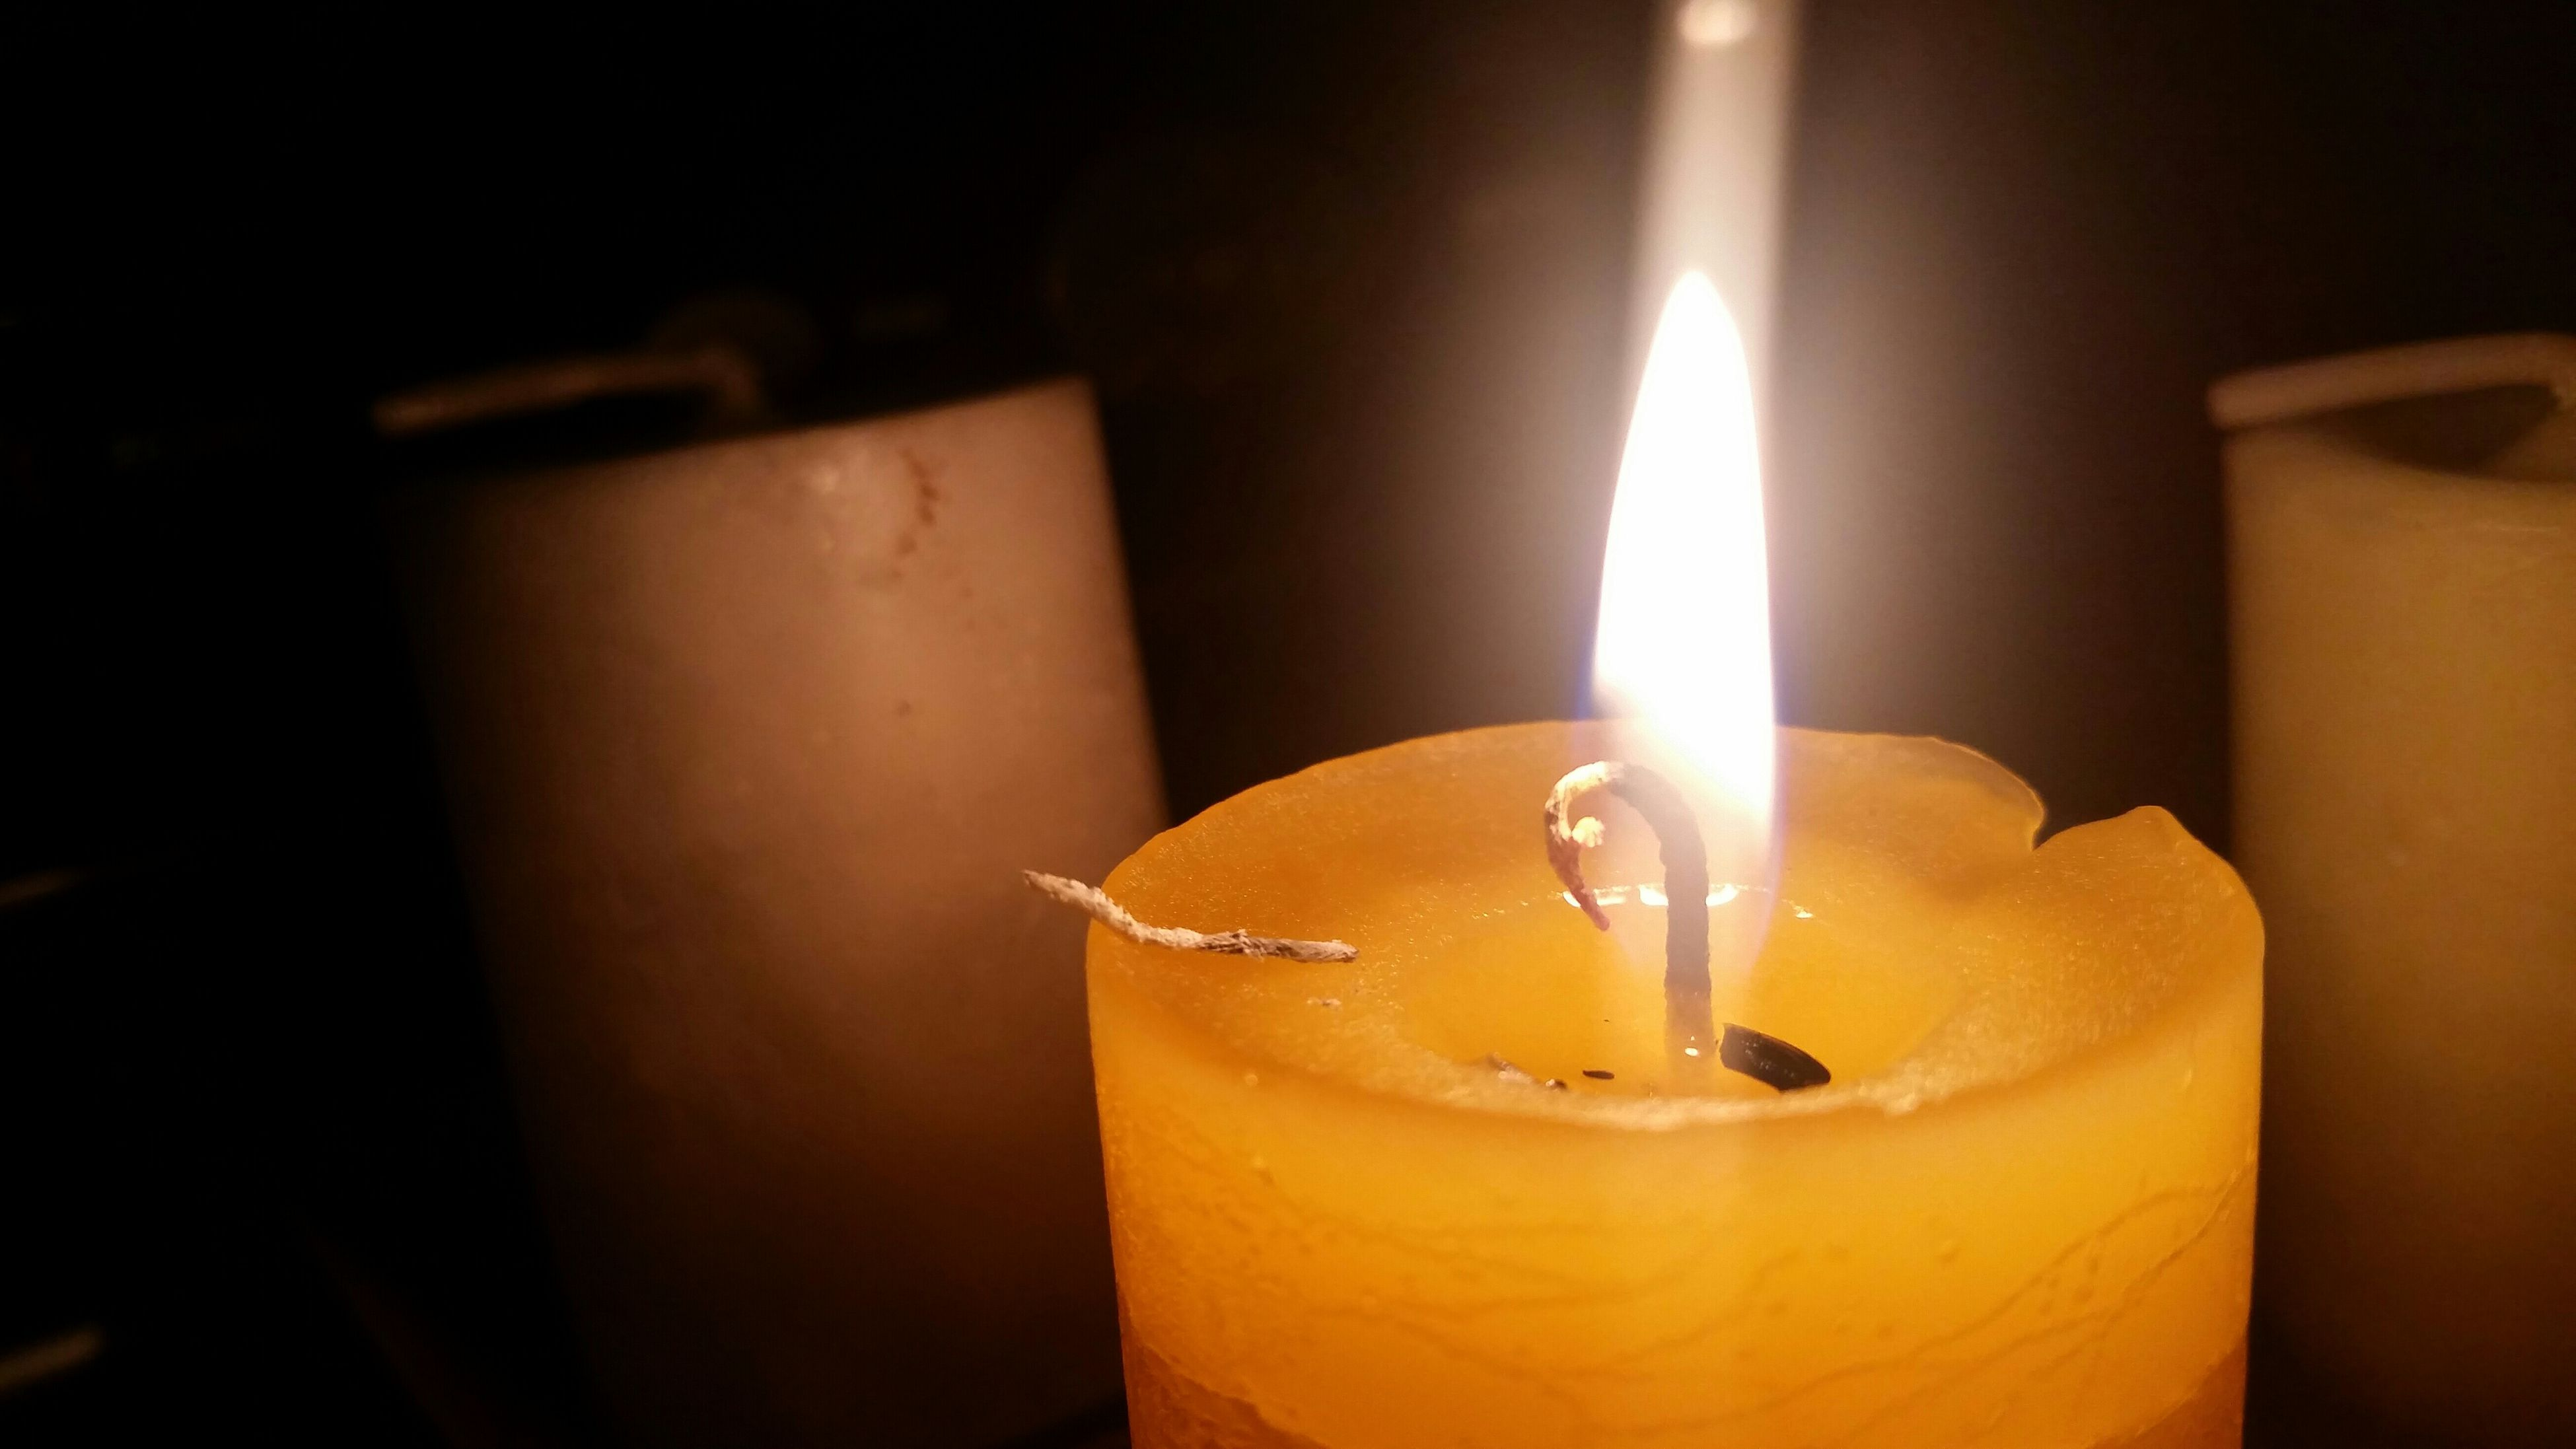 burning, flame, candle, glowing, indoors, illuminated, close-up, heat - temperature, fire - natural phenomenon, lit, candlelight, light - natural phenomenon, lighting equipment, still life, no people, focus on foreground, glass - material, dark, wall - building feature, yellow